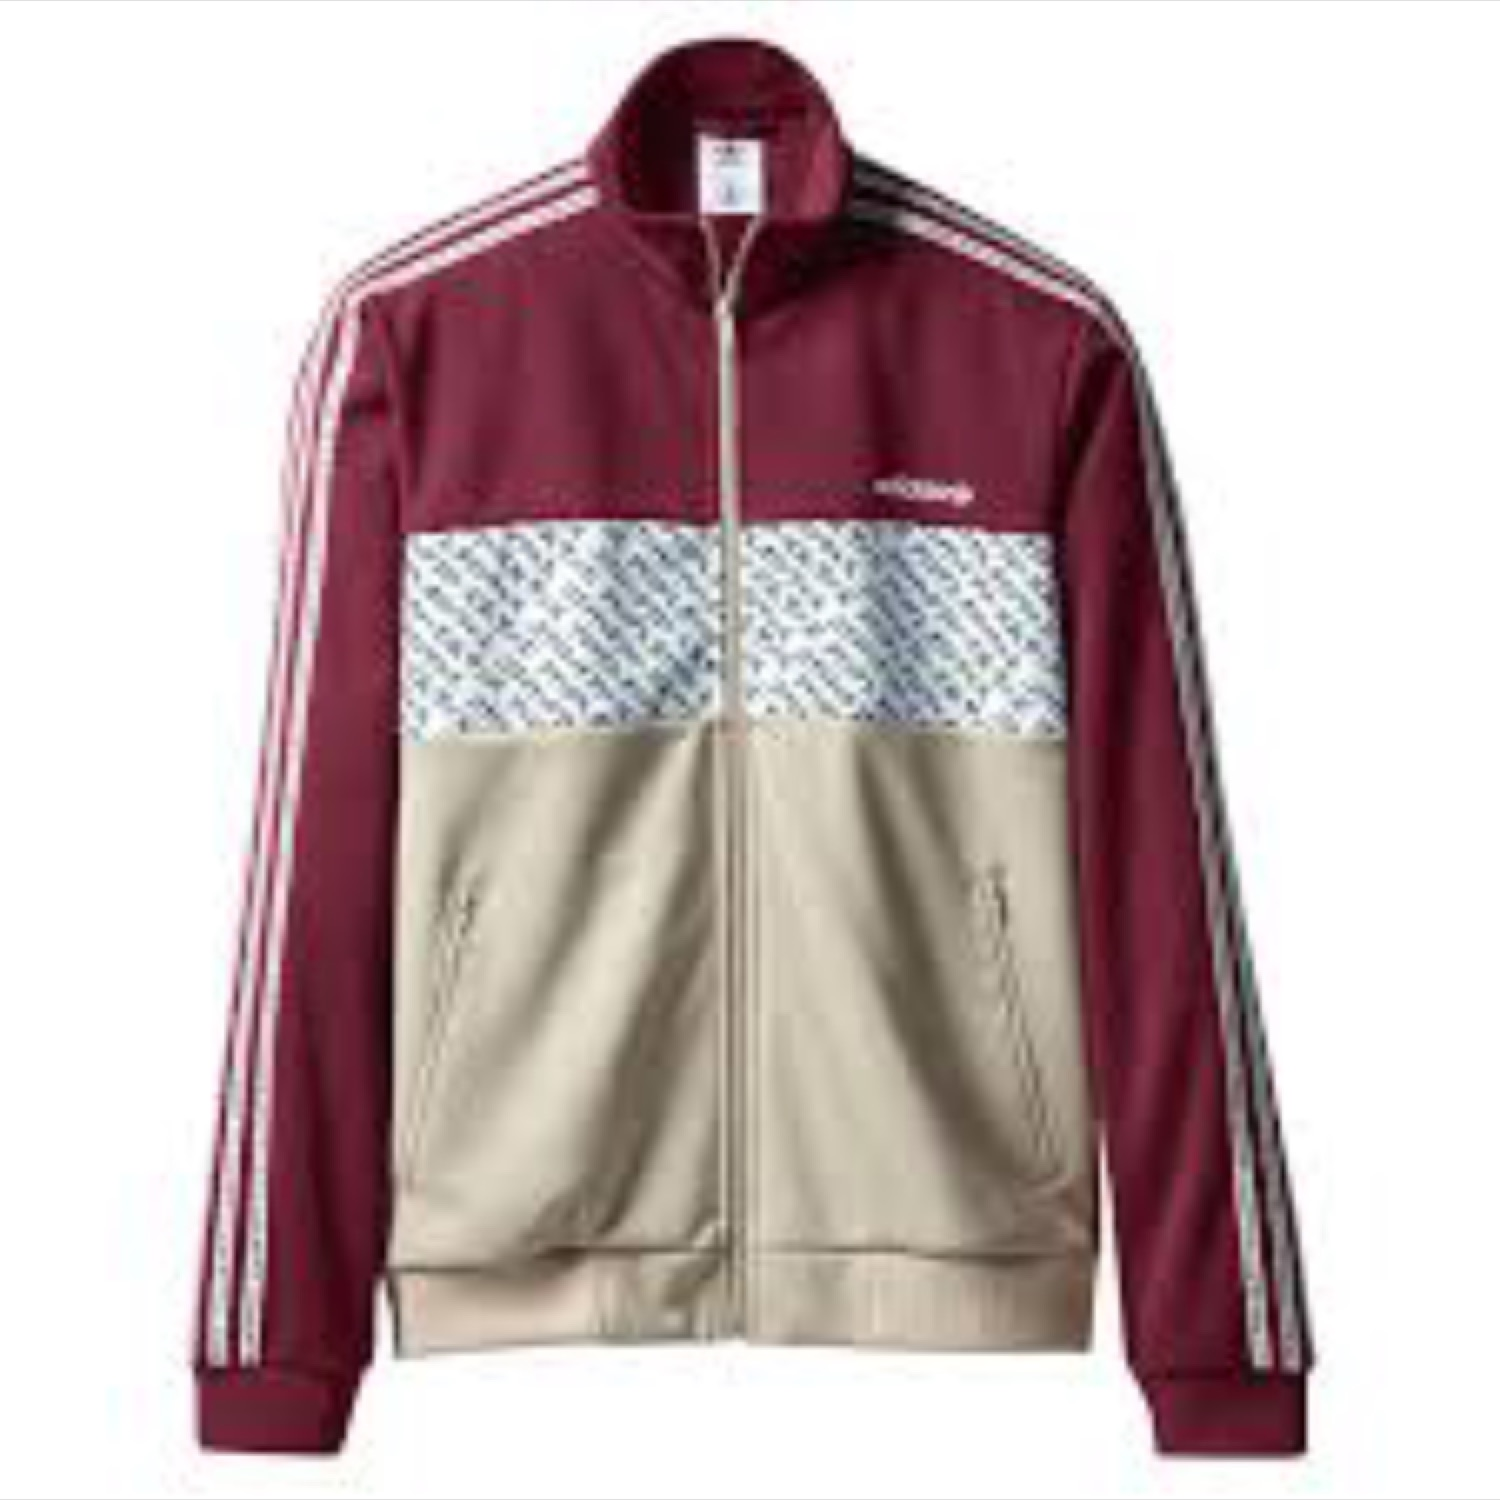 the best attitude 7e6c6 07417 Adidas X United Arrows Tracksuit & Sons X Mikitype